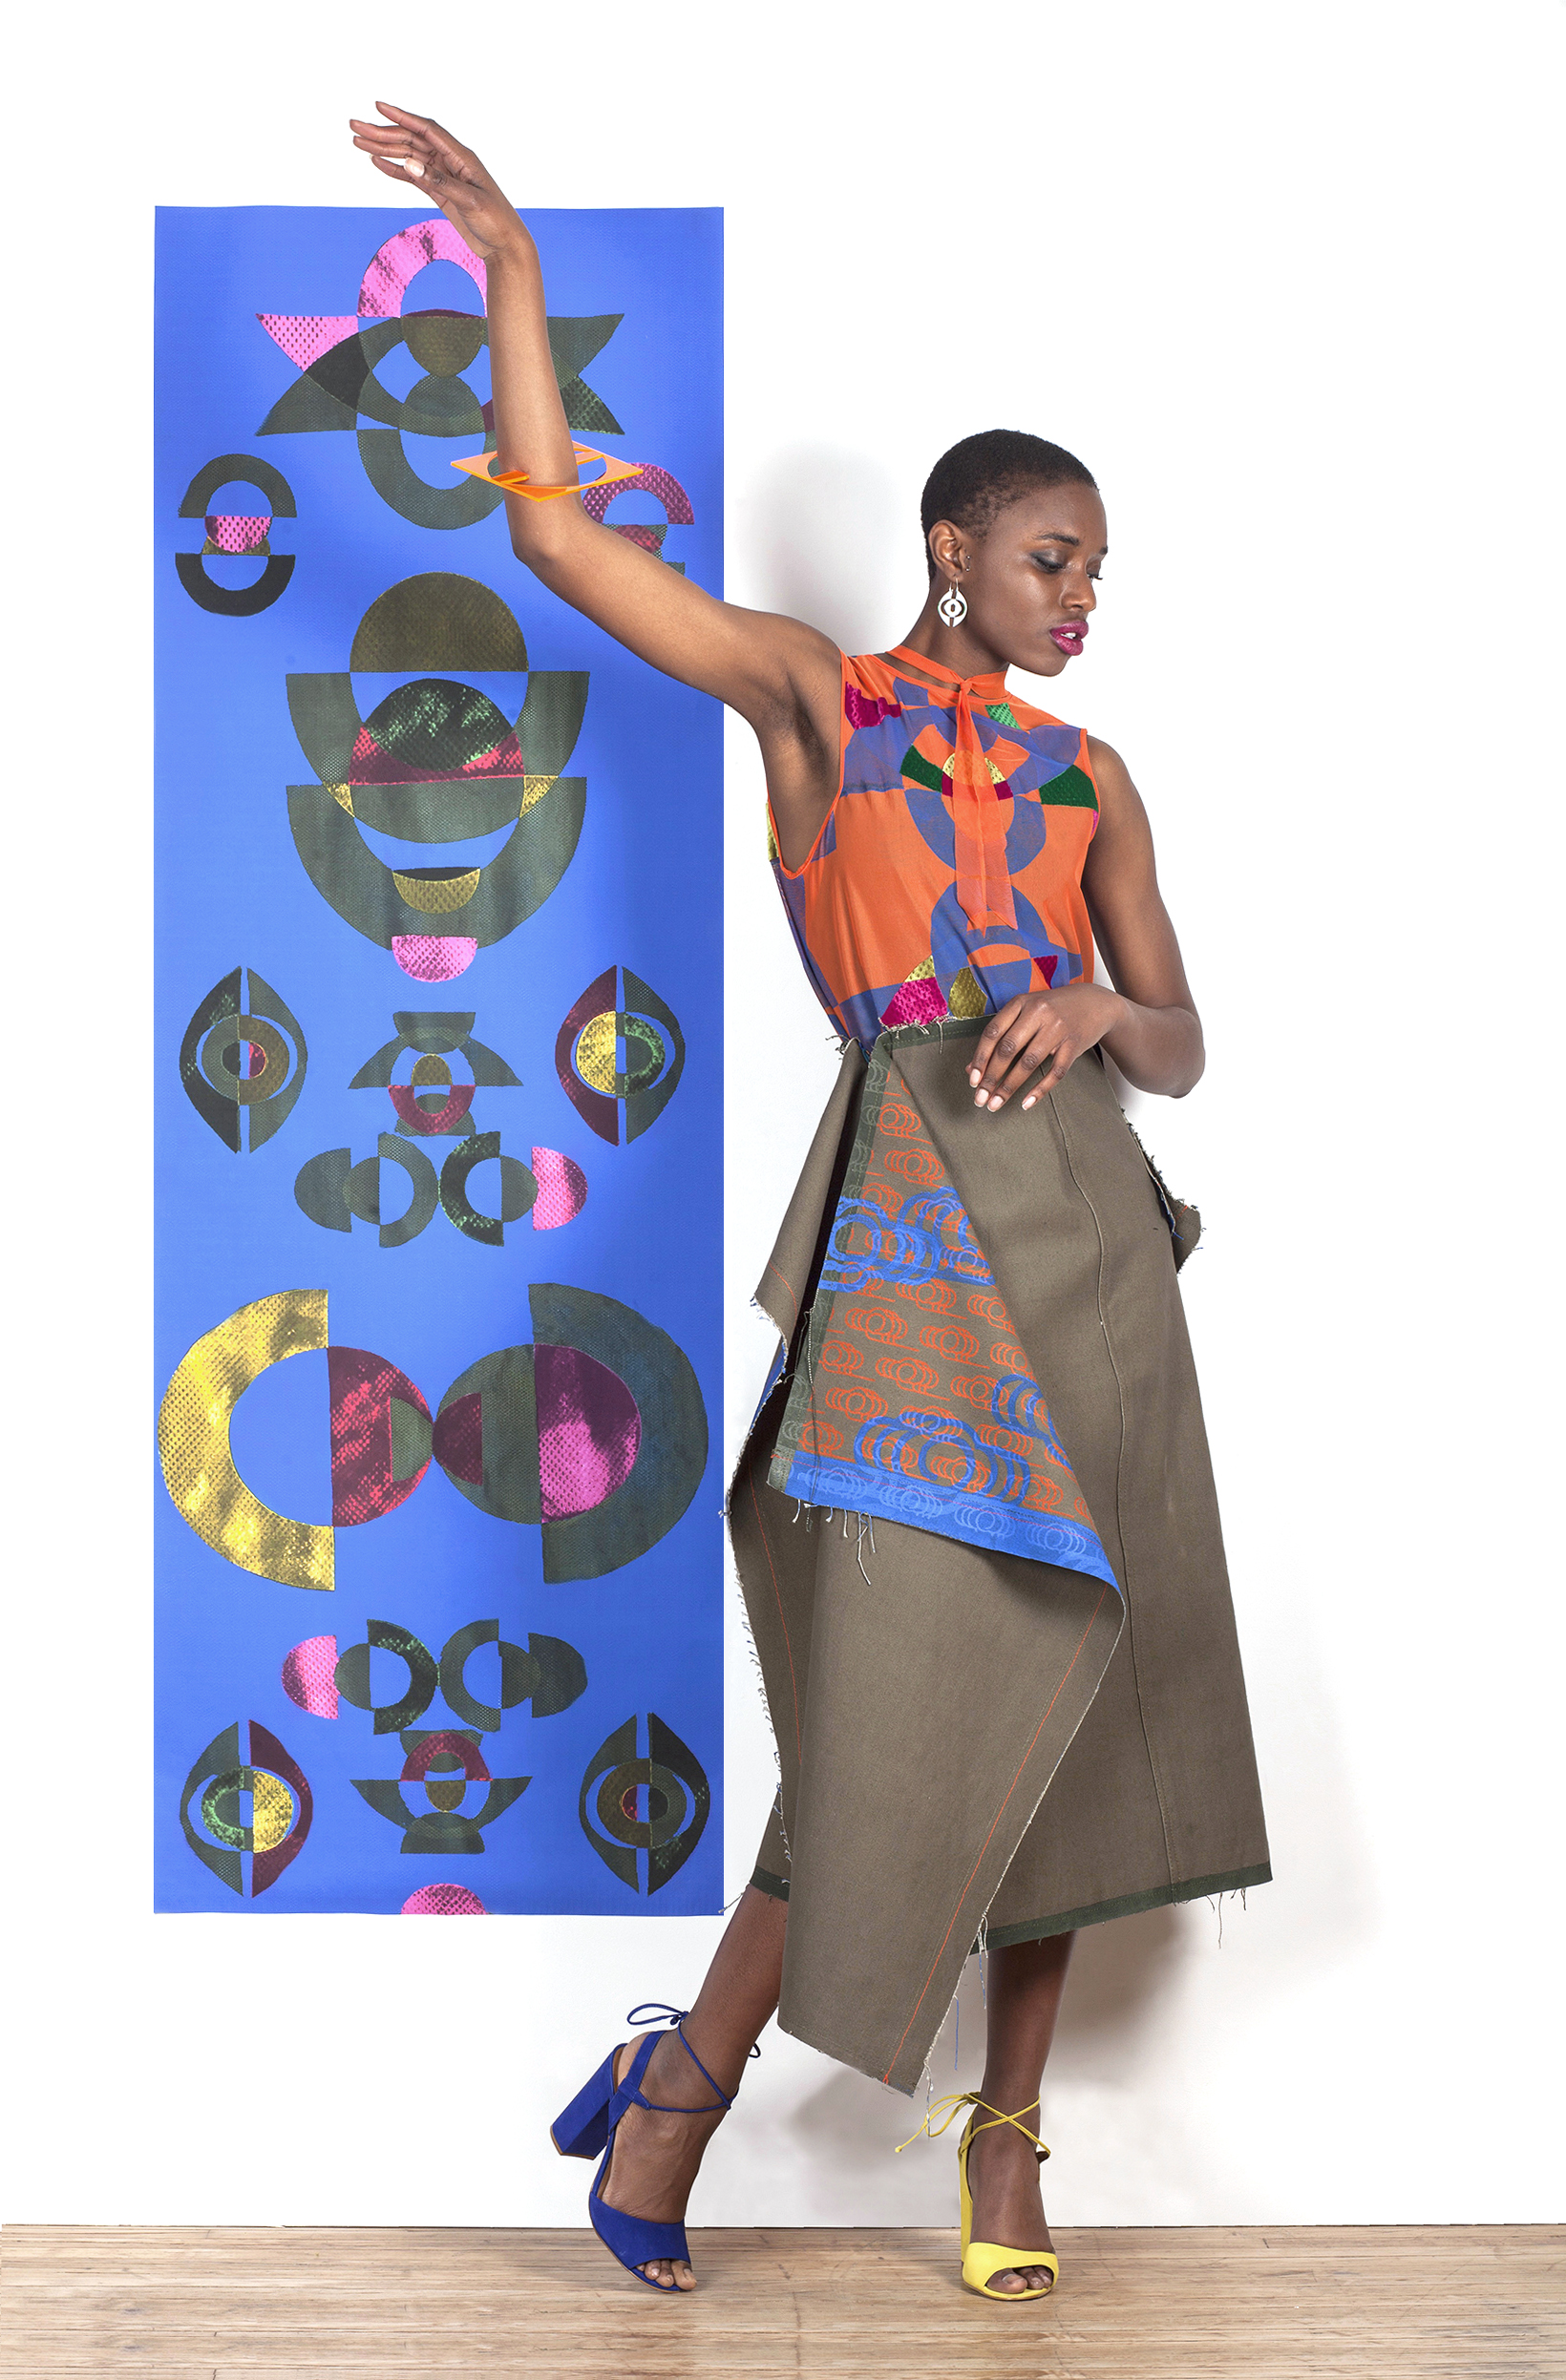 Block Printed and Velvet Appliqué Mesh Dress under a Block and Screen Printed Canvas Skirt with Laser Cut Earrings and Bracelett